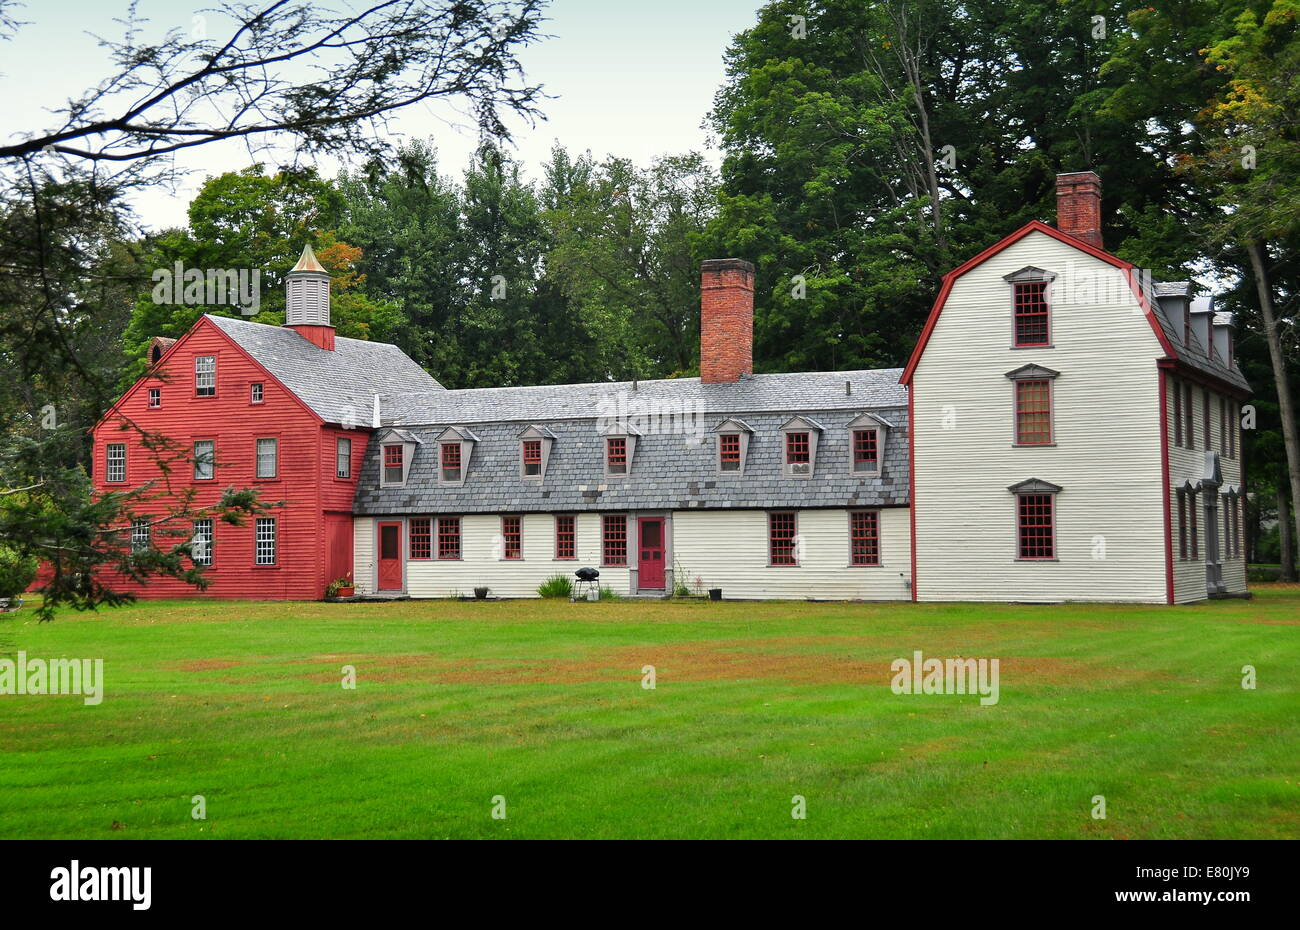 Deerfield, Massachusetts: The C. 1730 Dwight House With Its Attached Ell  And Red Barn *